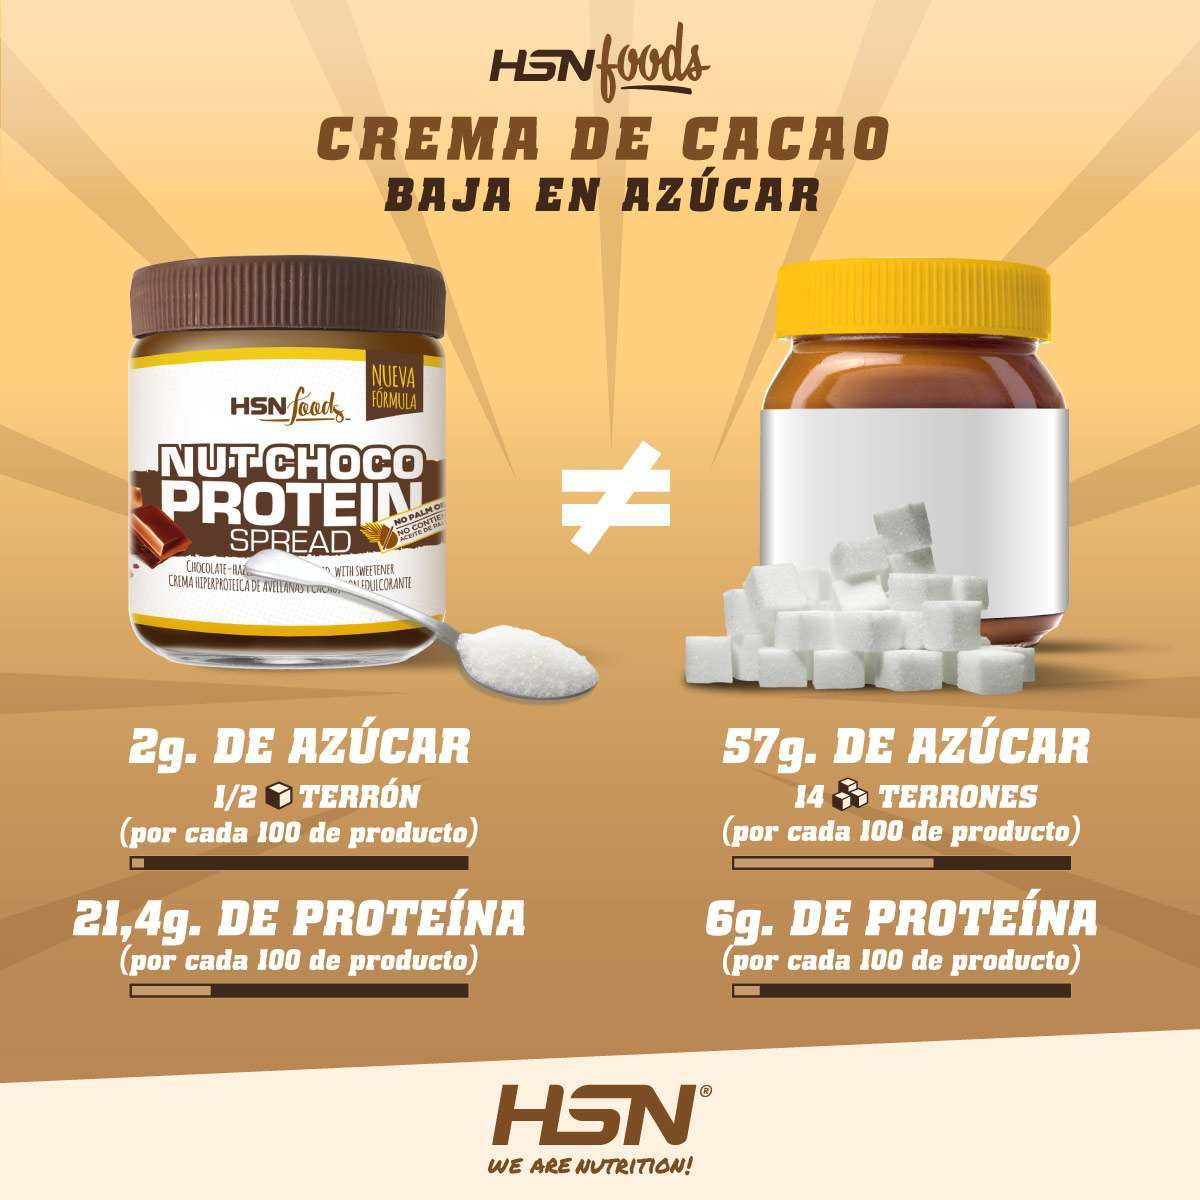 Nut Choco Protein FoodSeries